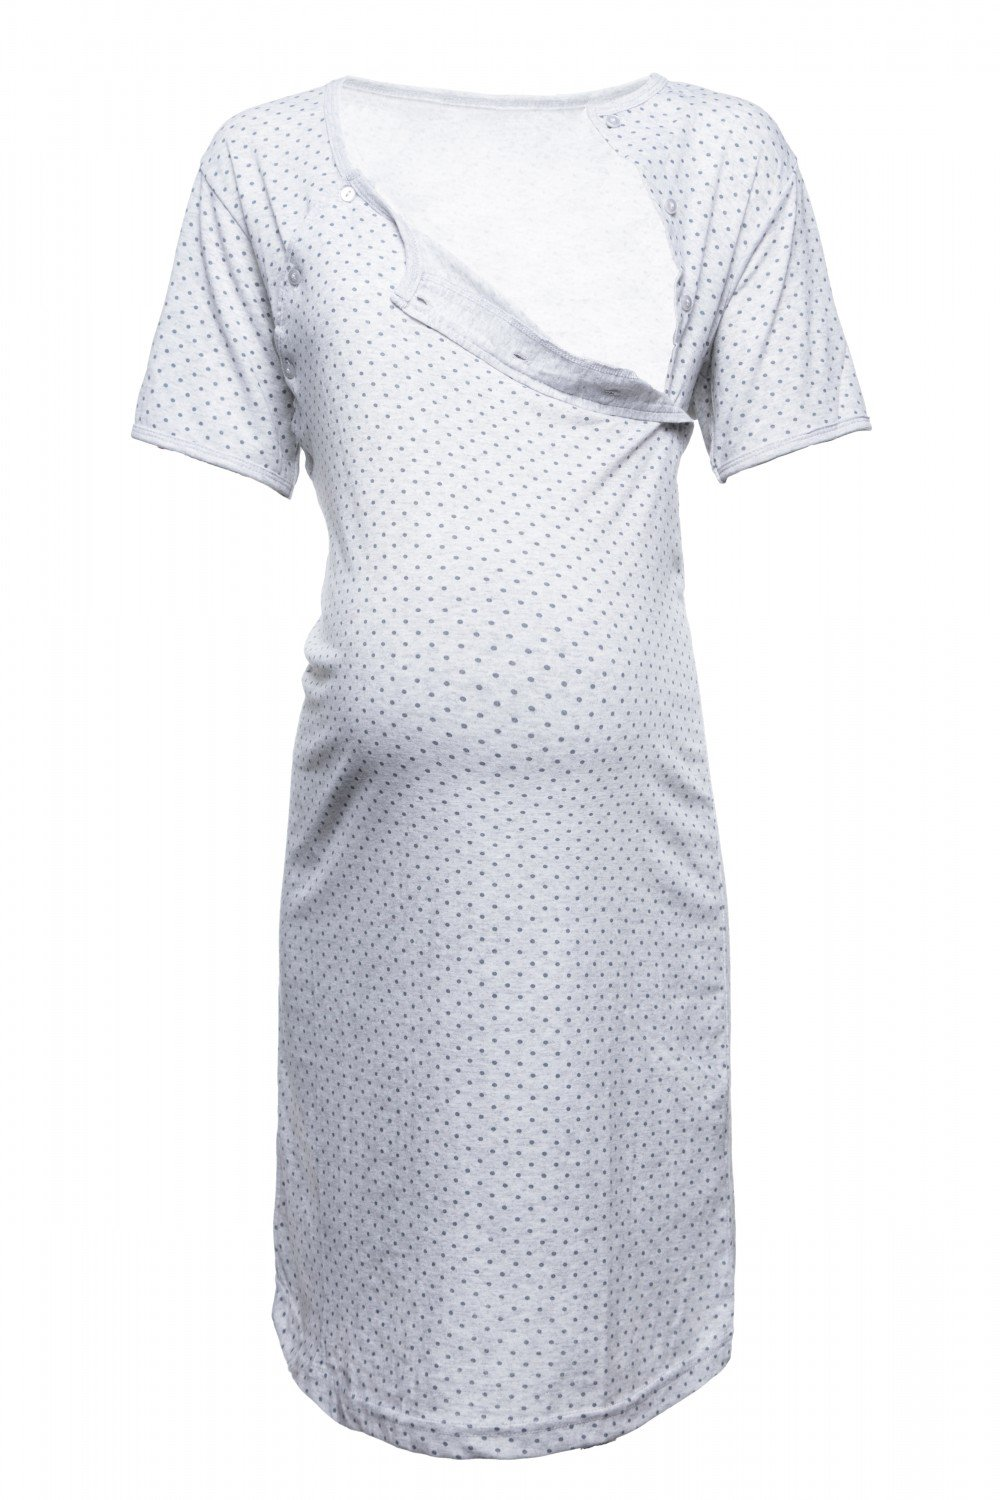 Happy Mama Women's Maternity Hospital Gown Nightie Polka Dot Breastfeeding. 115p pregnight_115